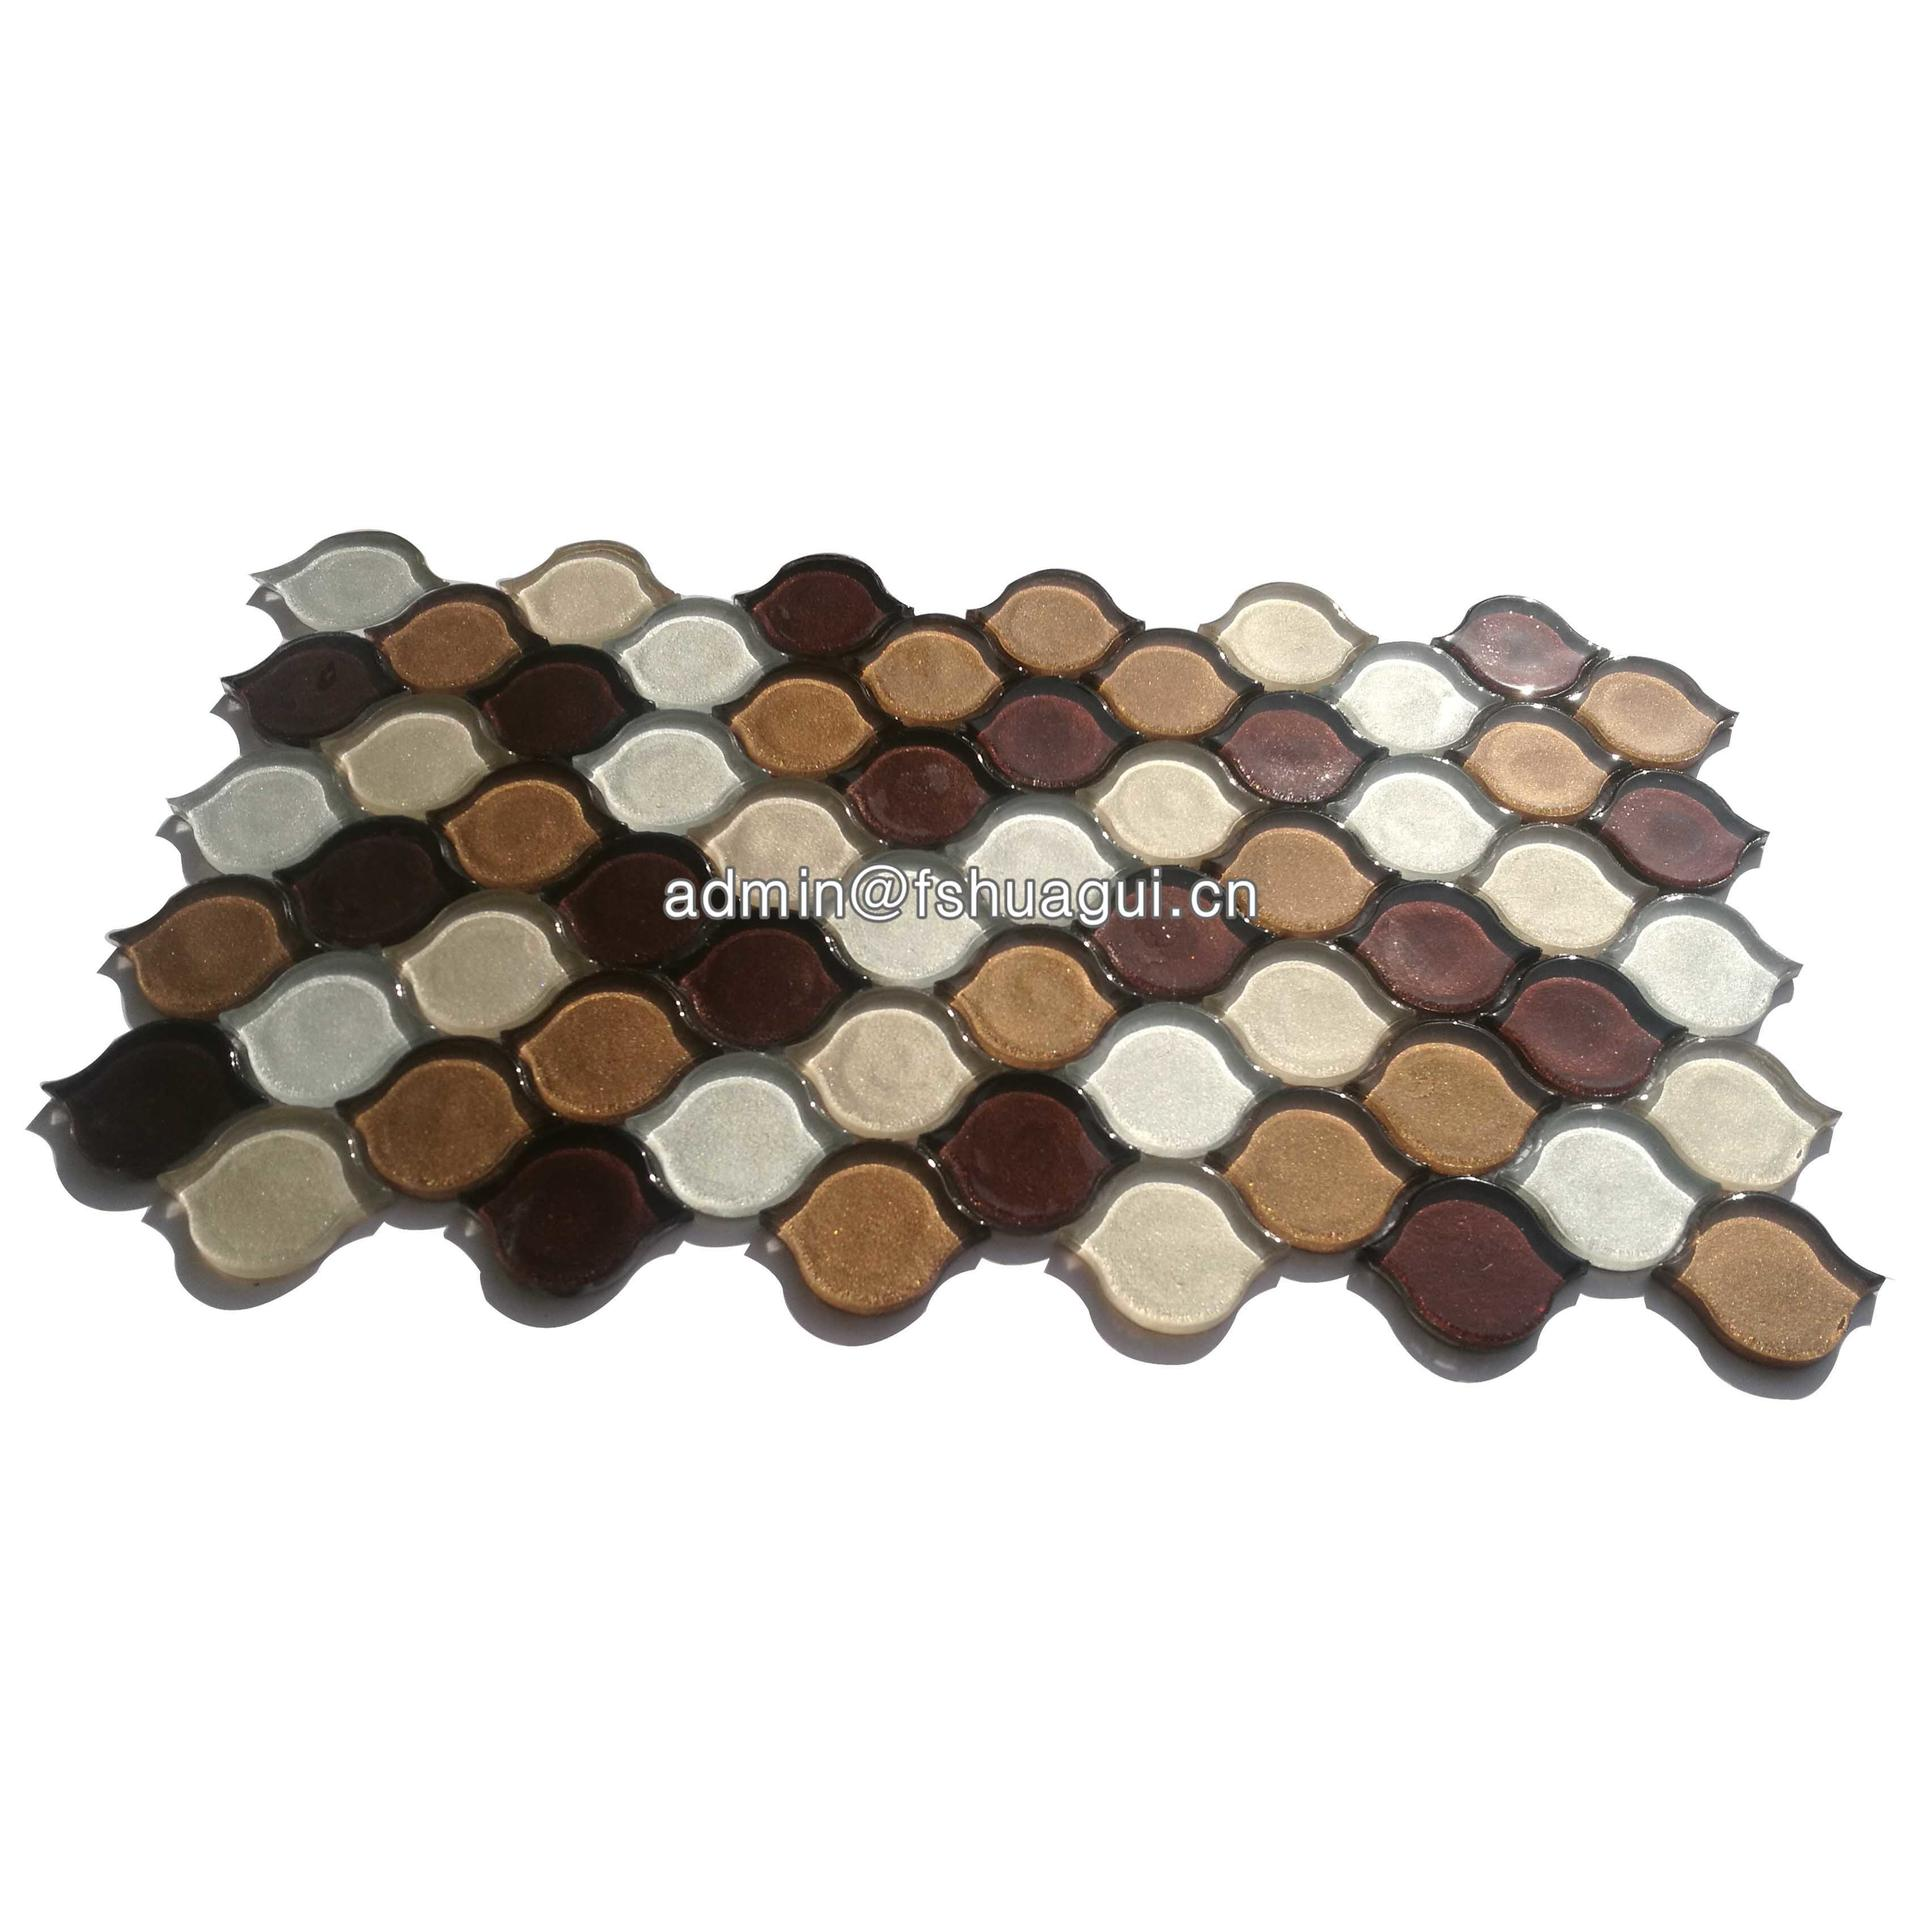 Reflective taupe arabesque glass mosaic glossy tiles for decoration